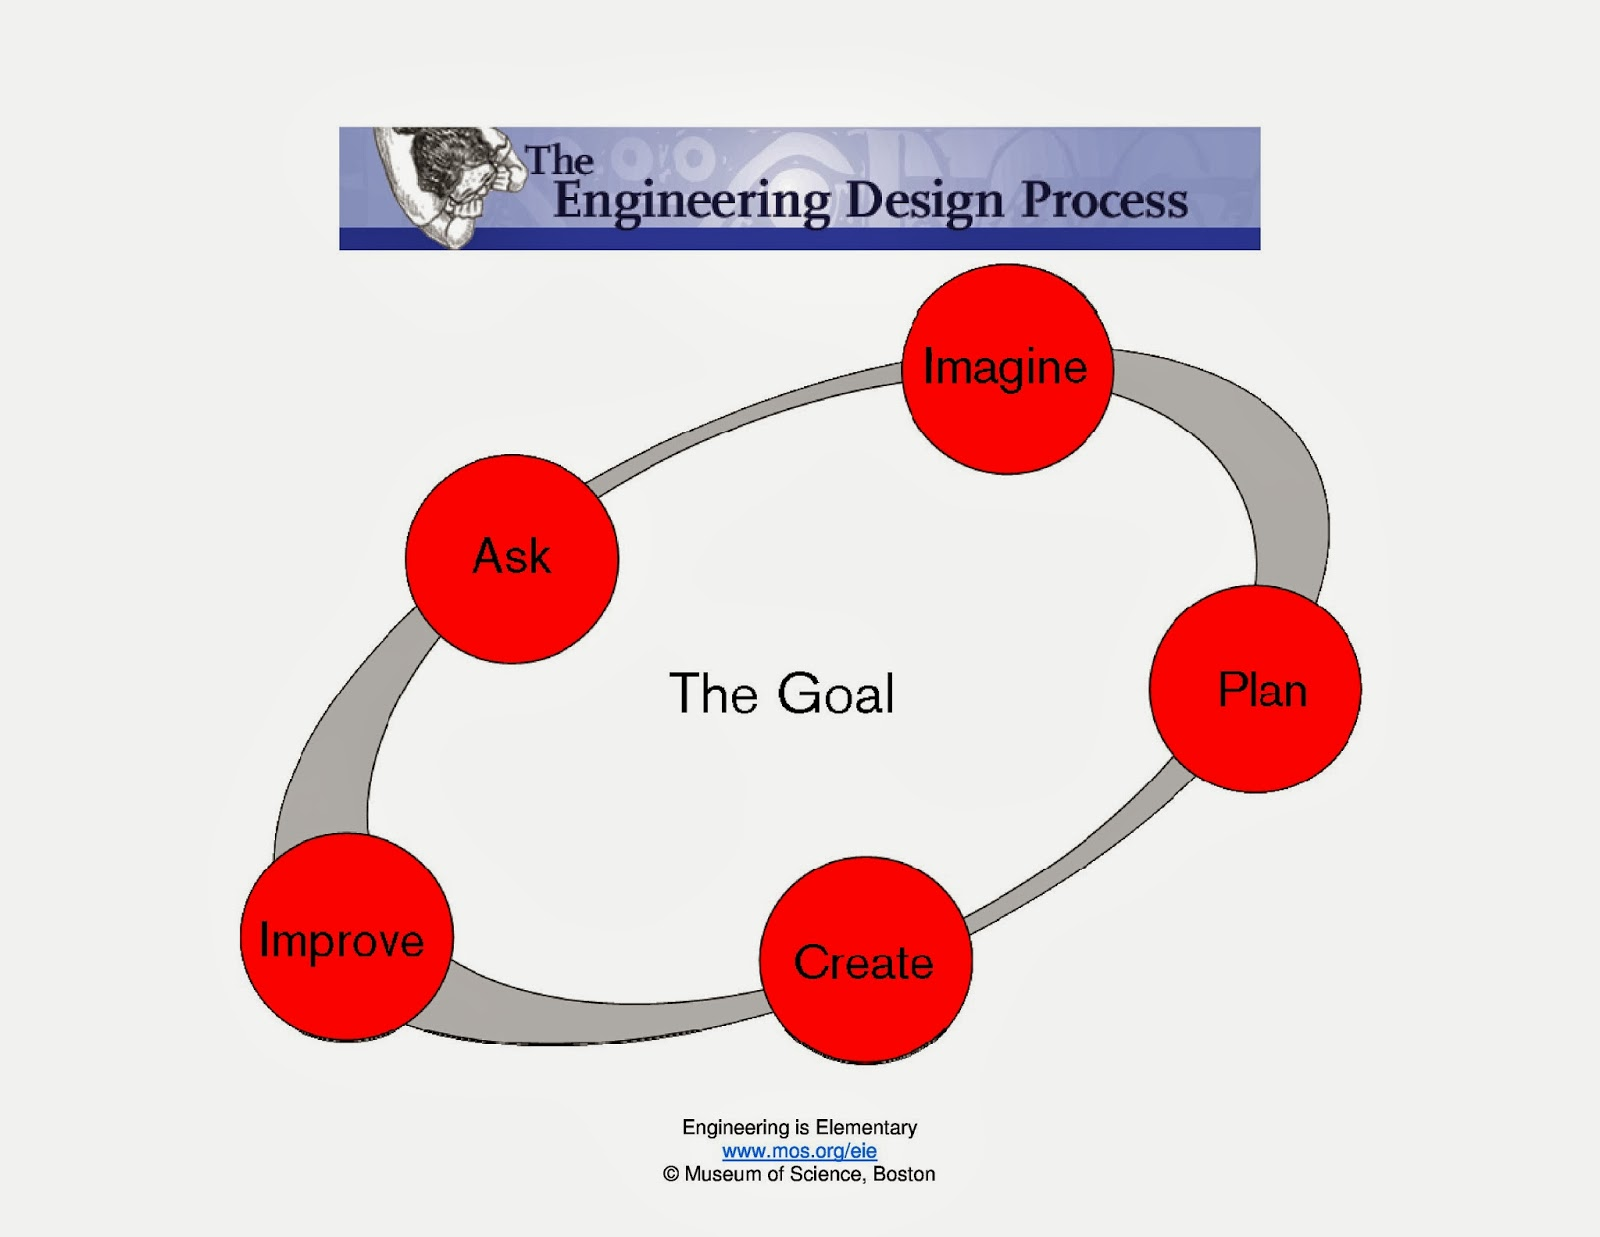 medium resolution of engineering adventures is a curriculum designed for out of school time to introduce kids to the engineering design process